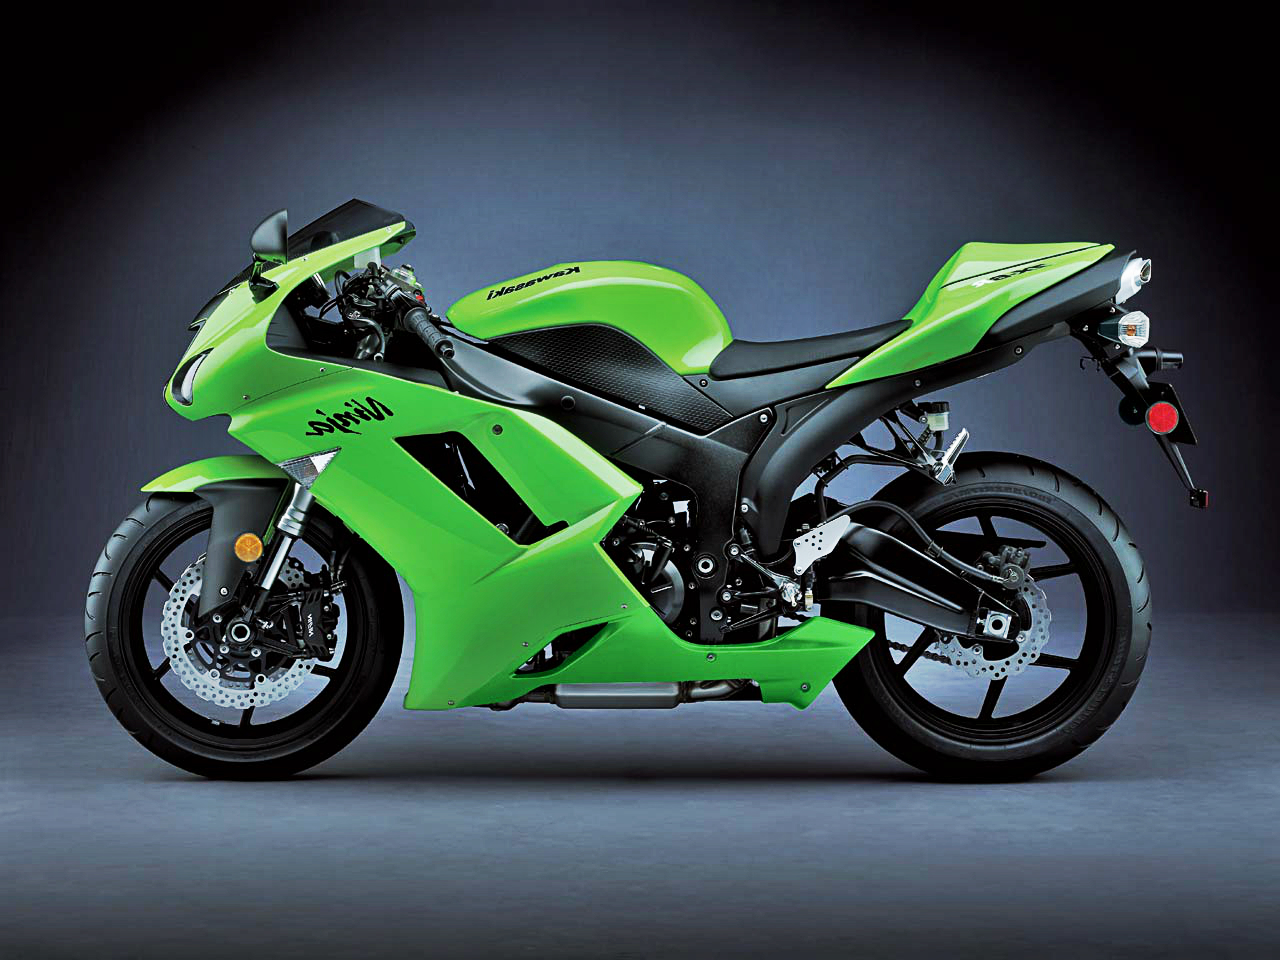 kawasaki ninja zx 6r hd wallpapers. Black Bedroom Furniture Sets. Home Design Ideas